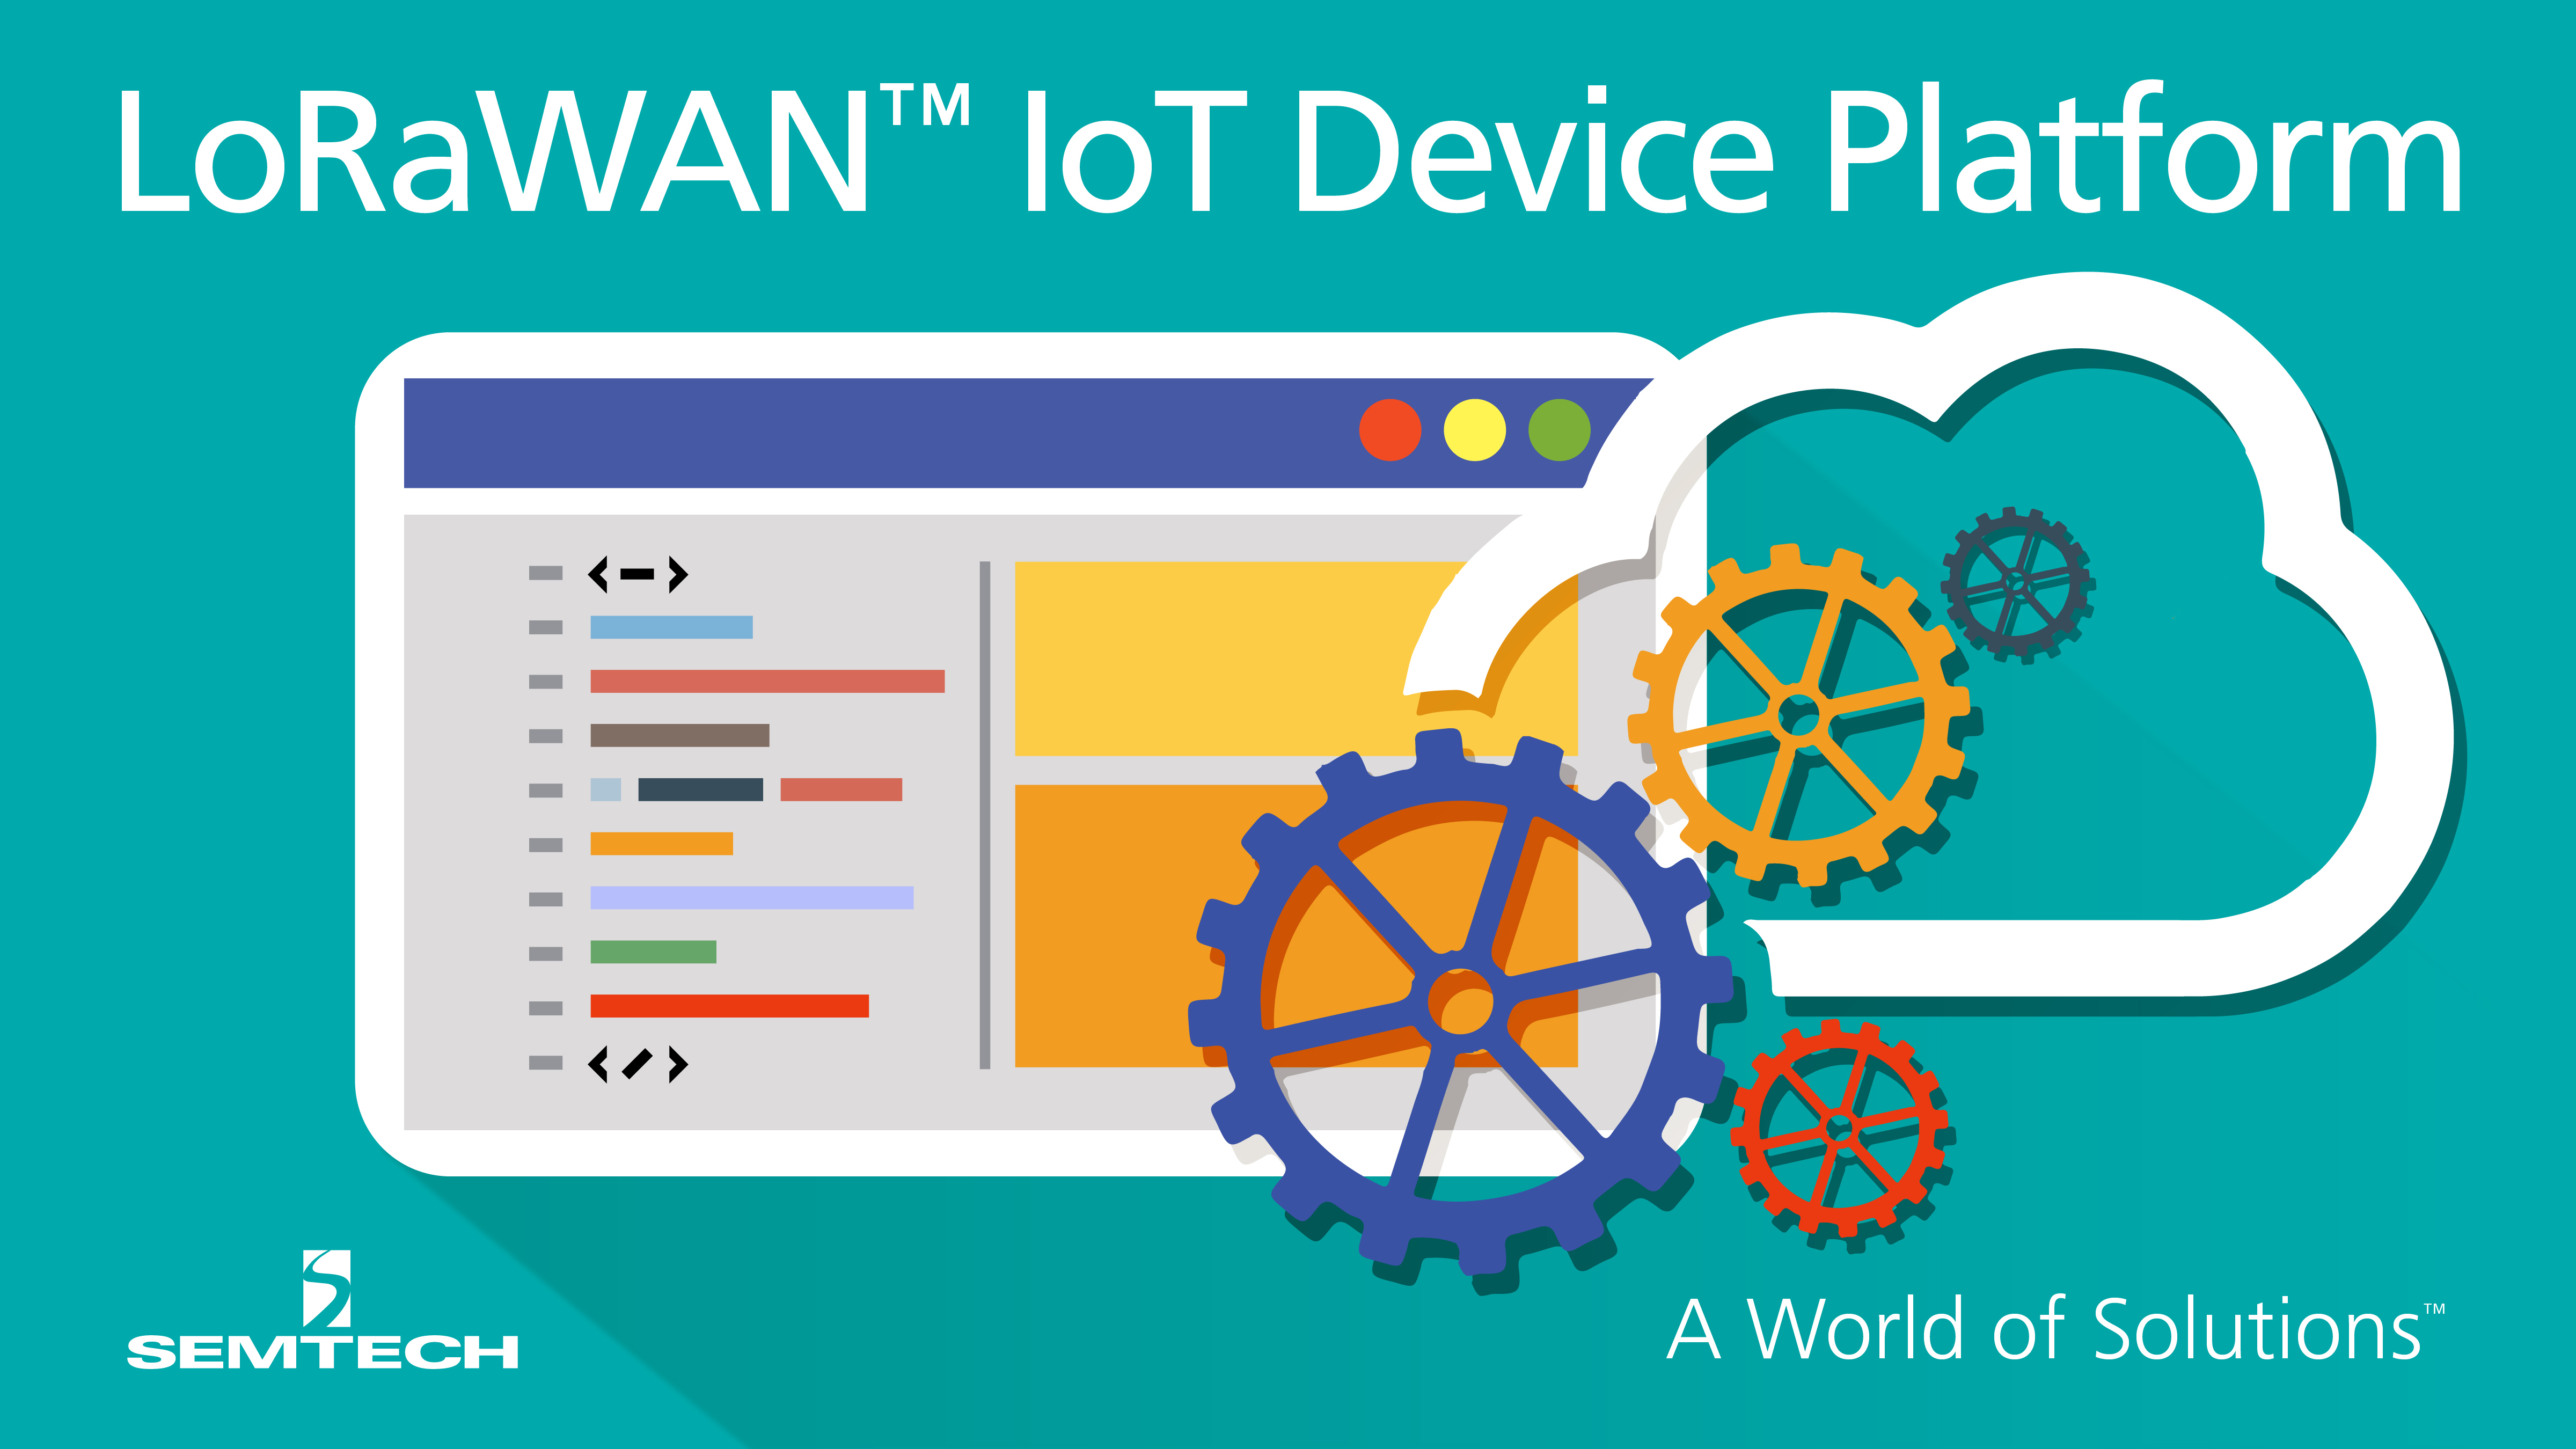 Semtech and ARM Introduce mbed IoT Device Platform for